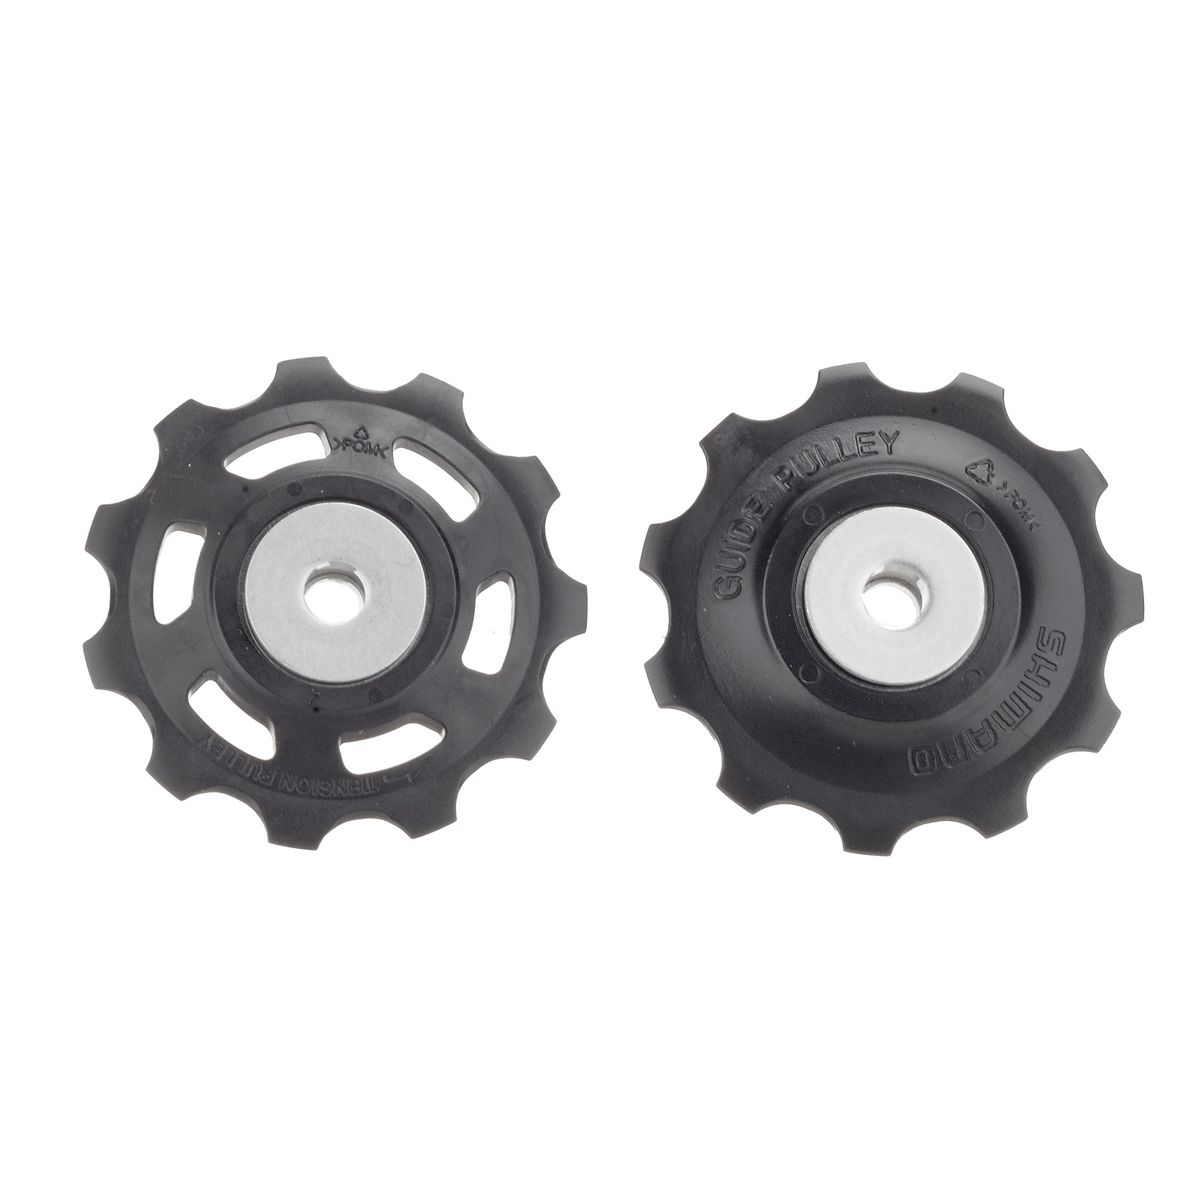 XT 10-SPEED JOCKEY WHEELS